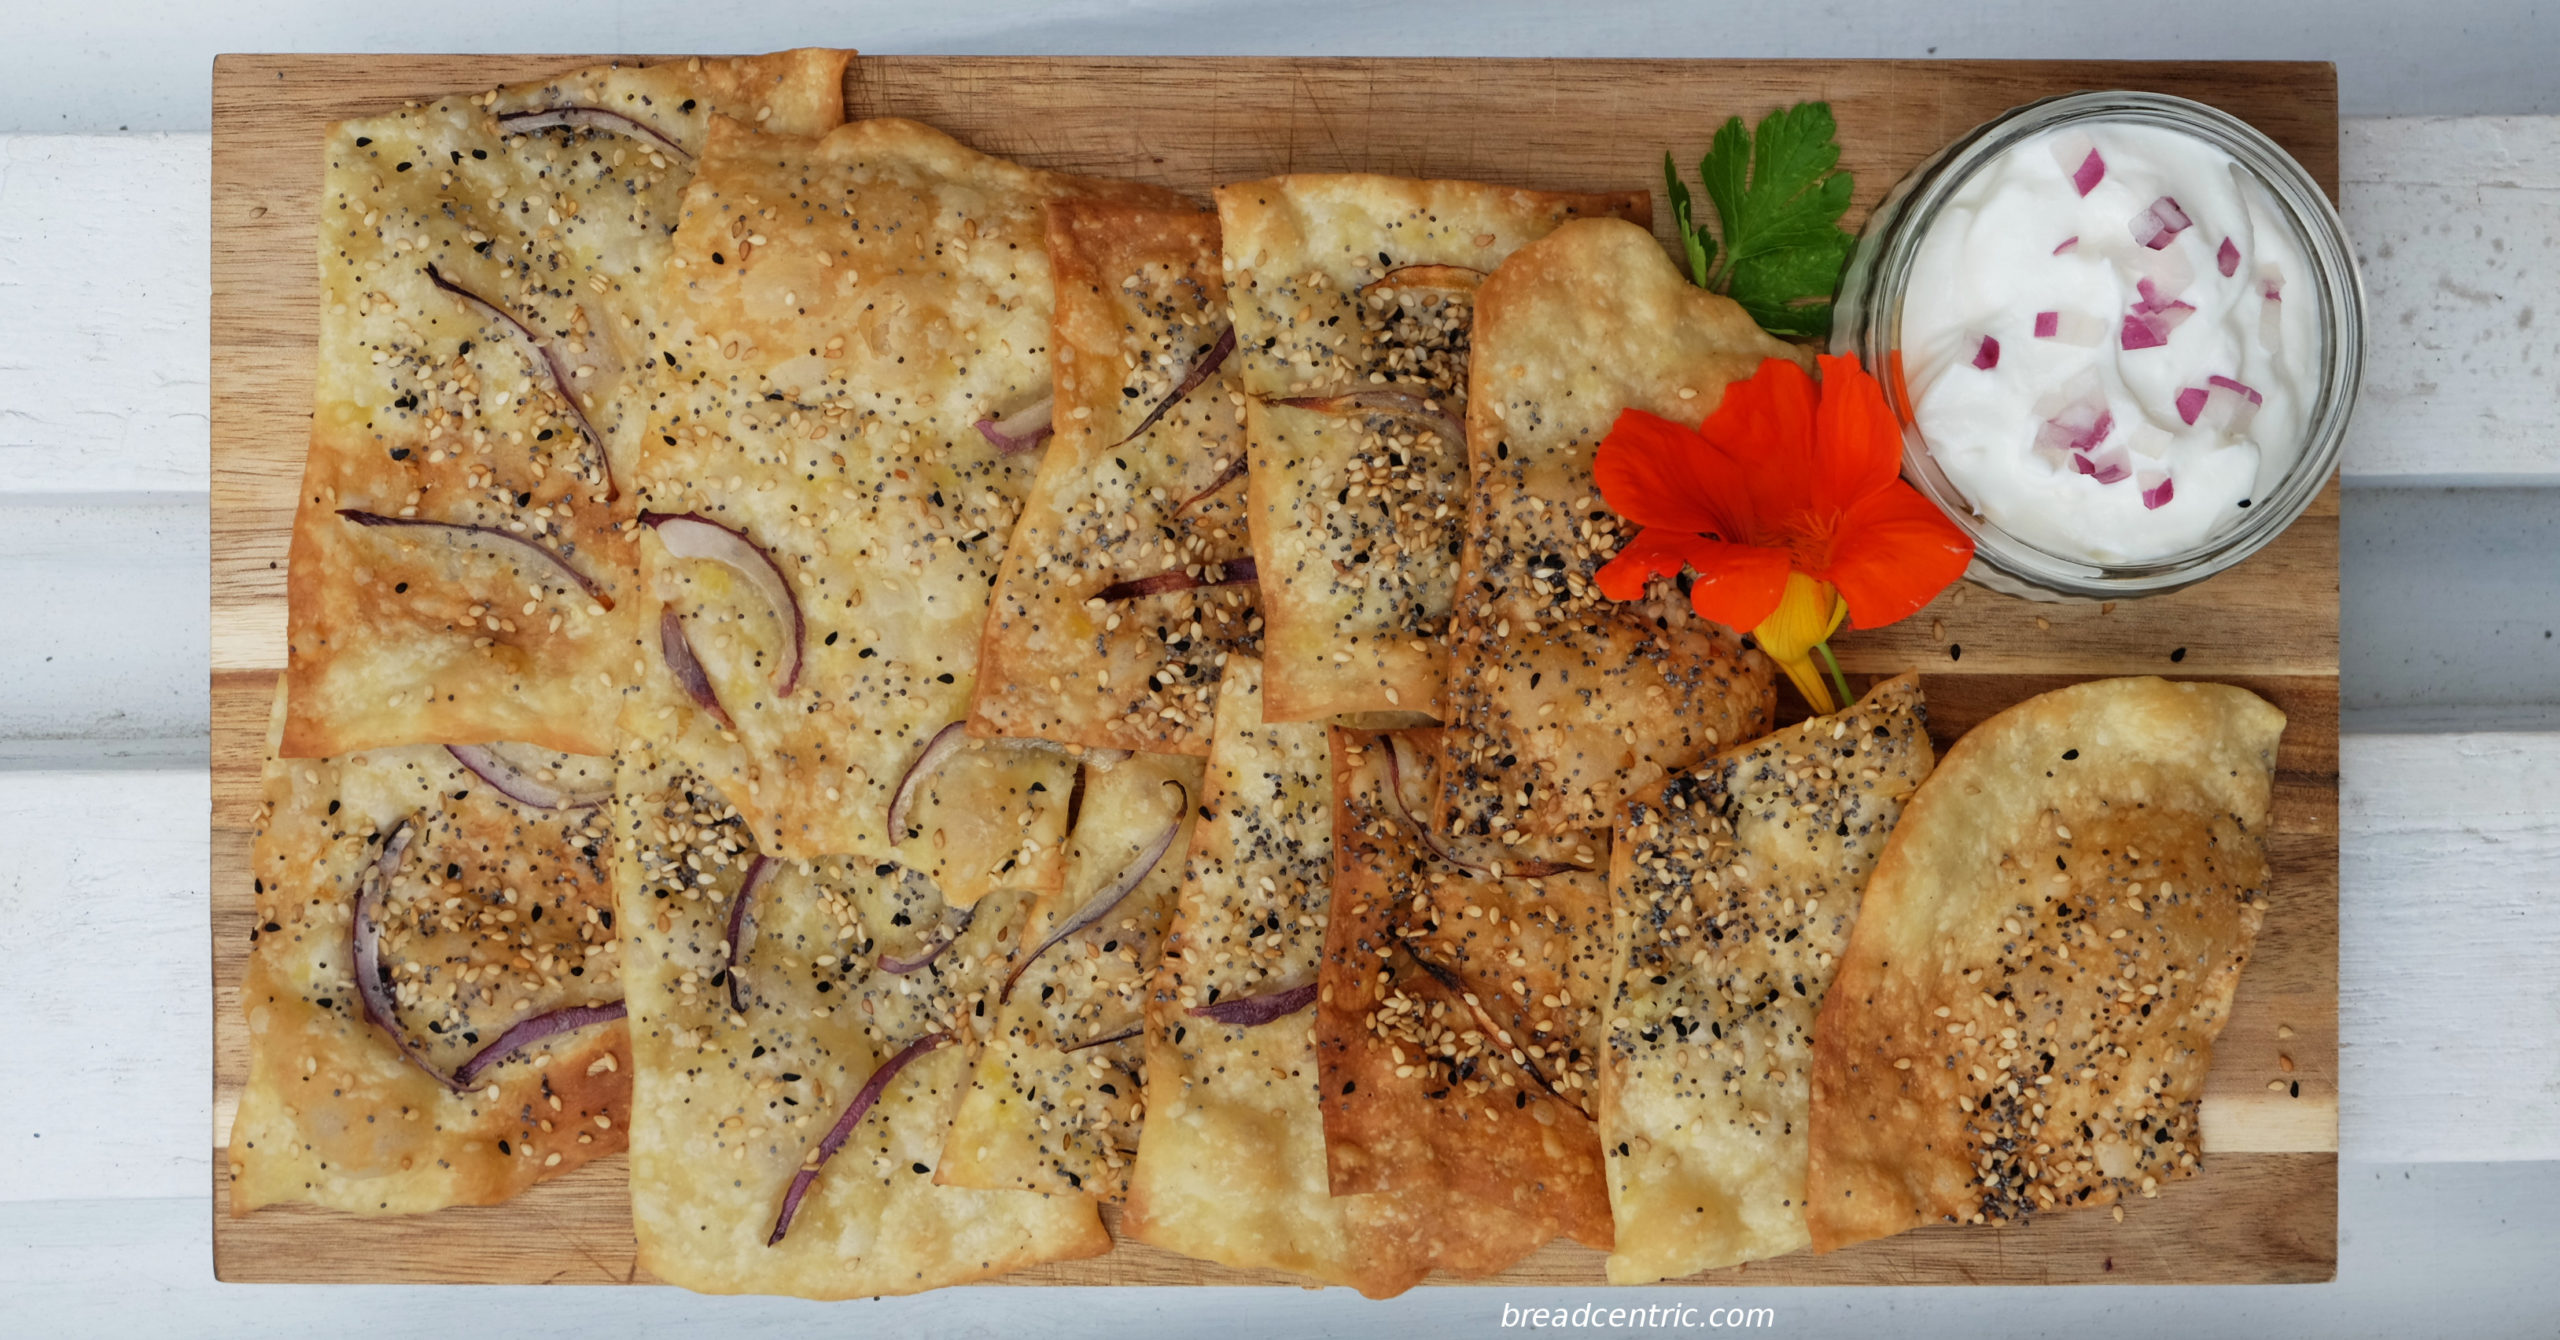 Armenian flatbreads, served with a dip and an edible nasturtium flour (tastes a bit like radish)